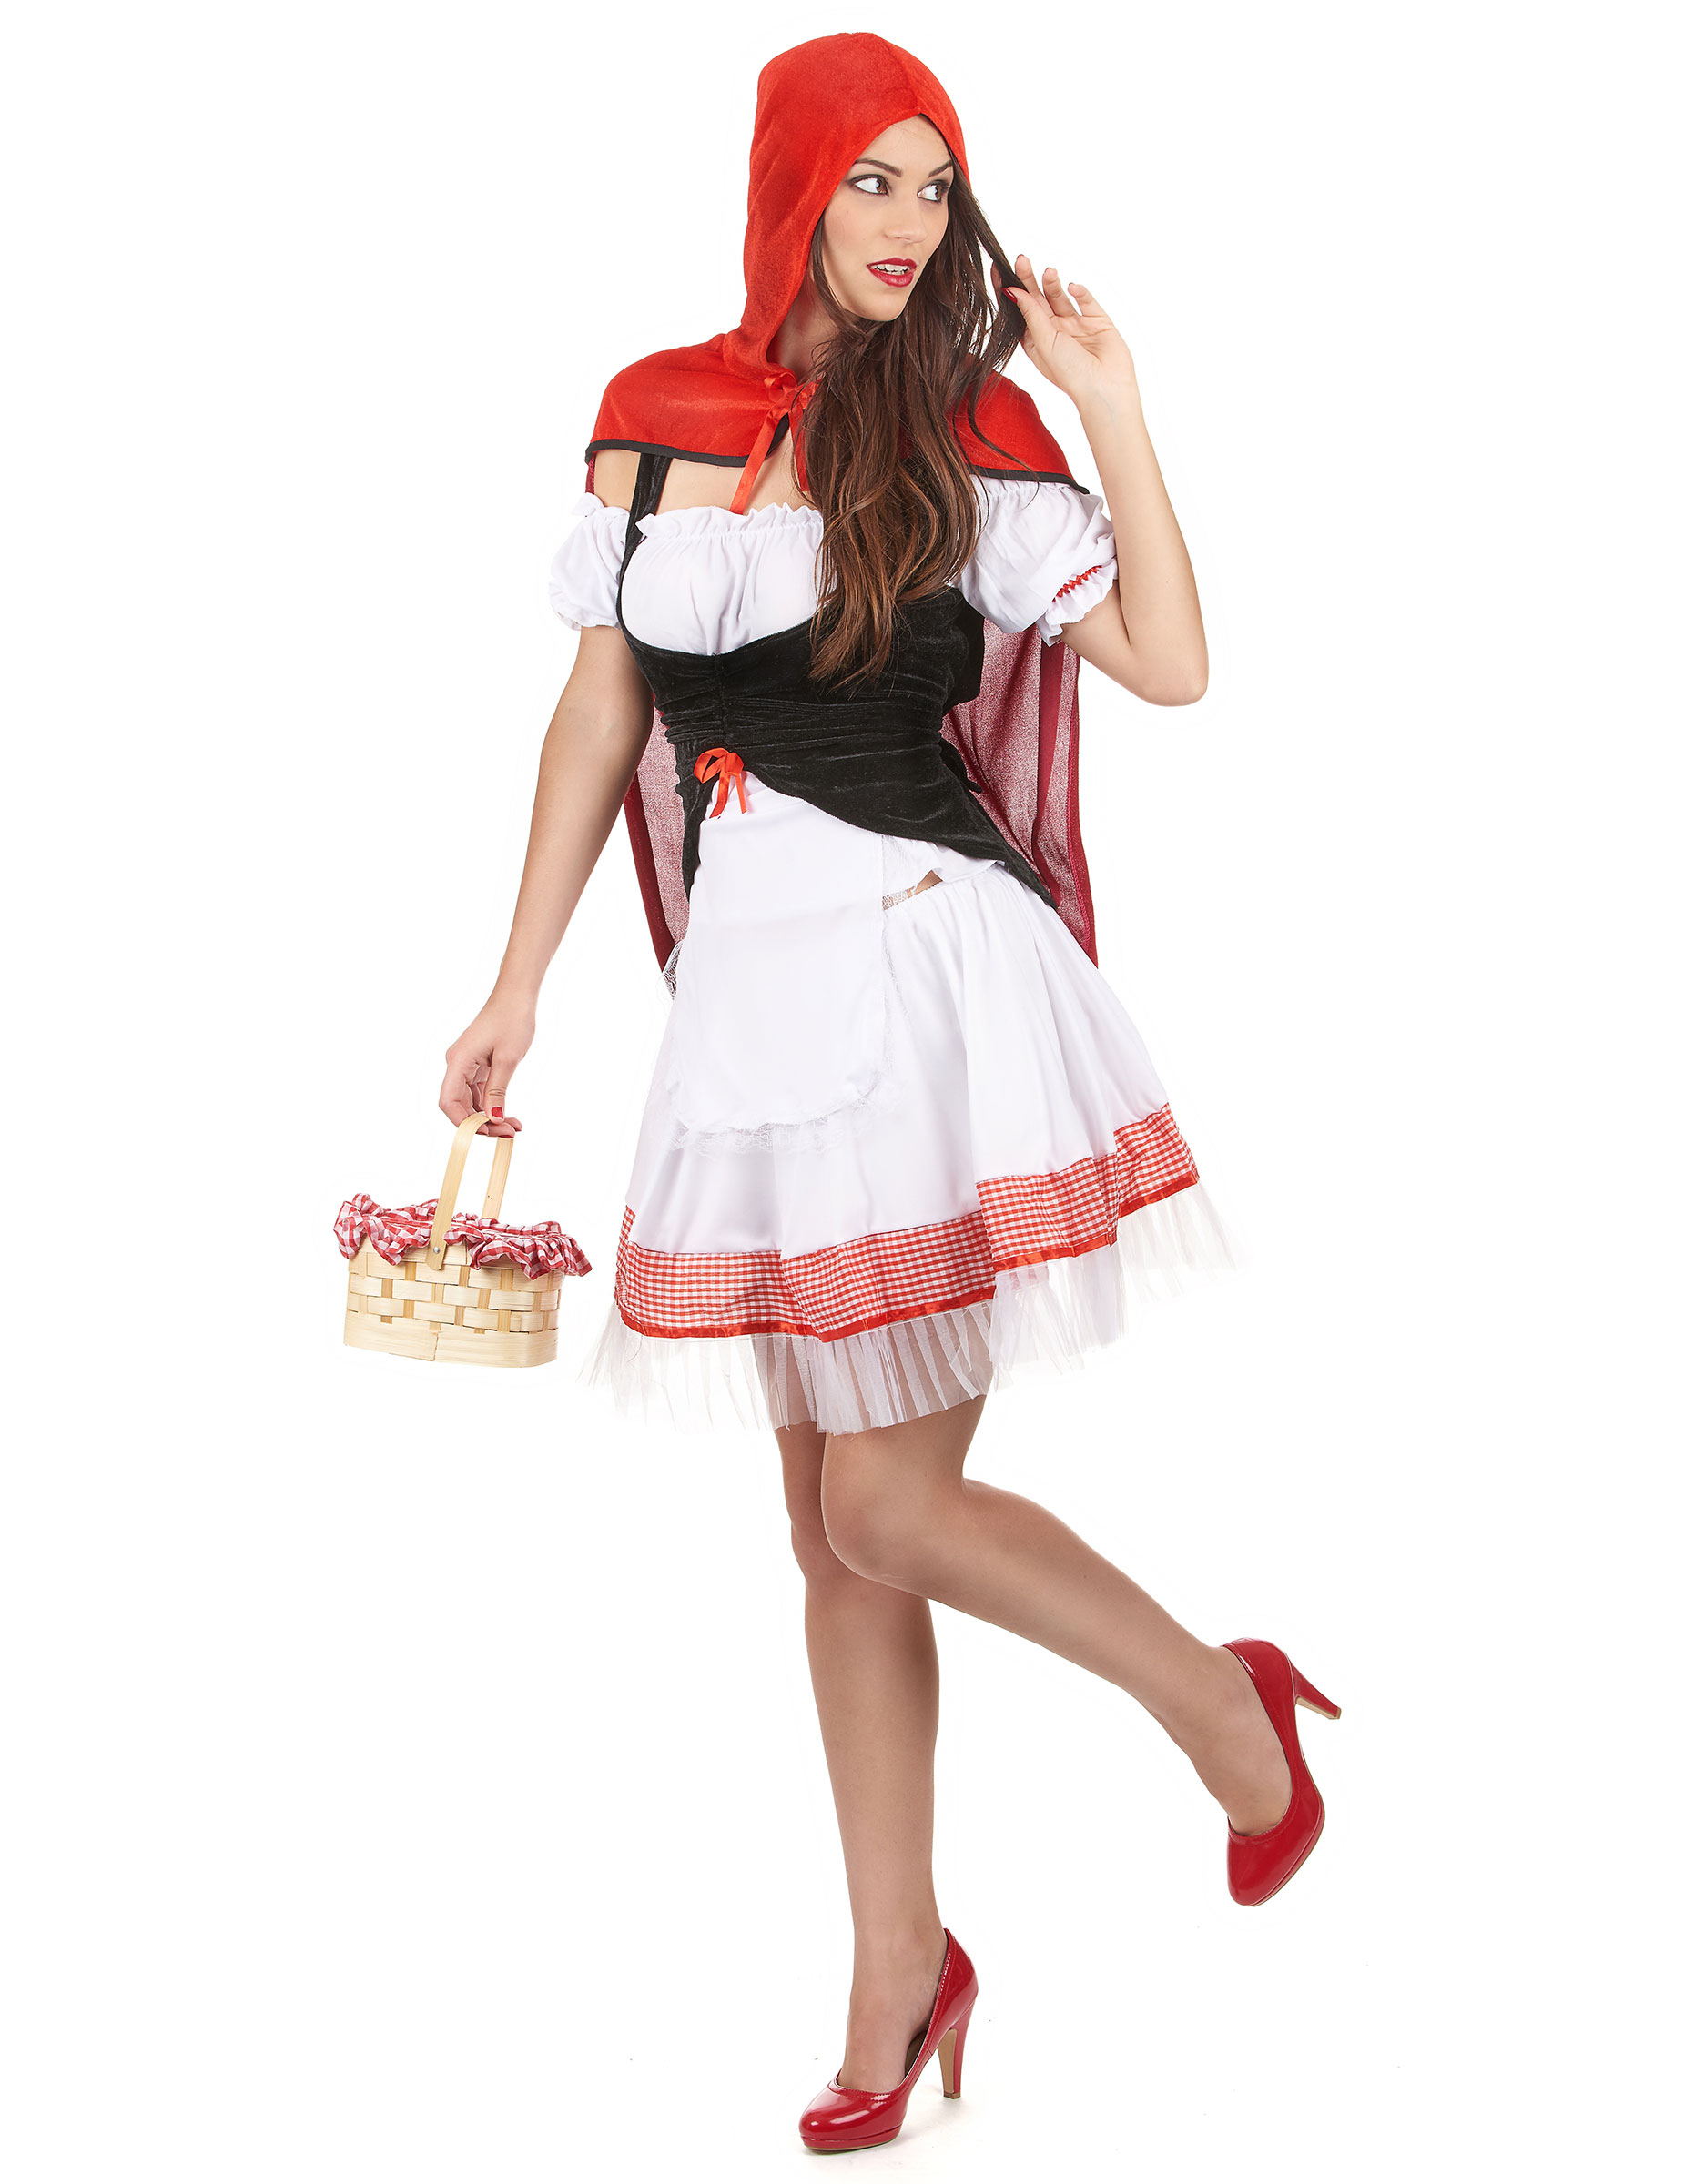 Red Riding Hood Costumes For Women